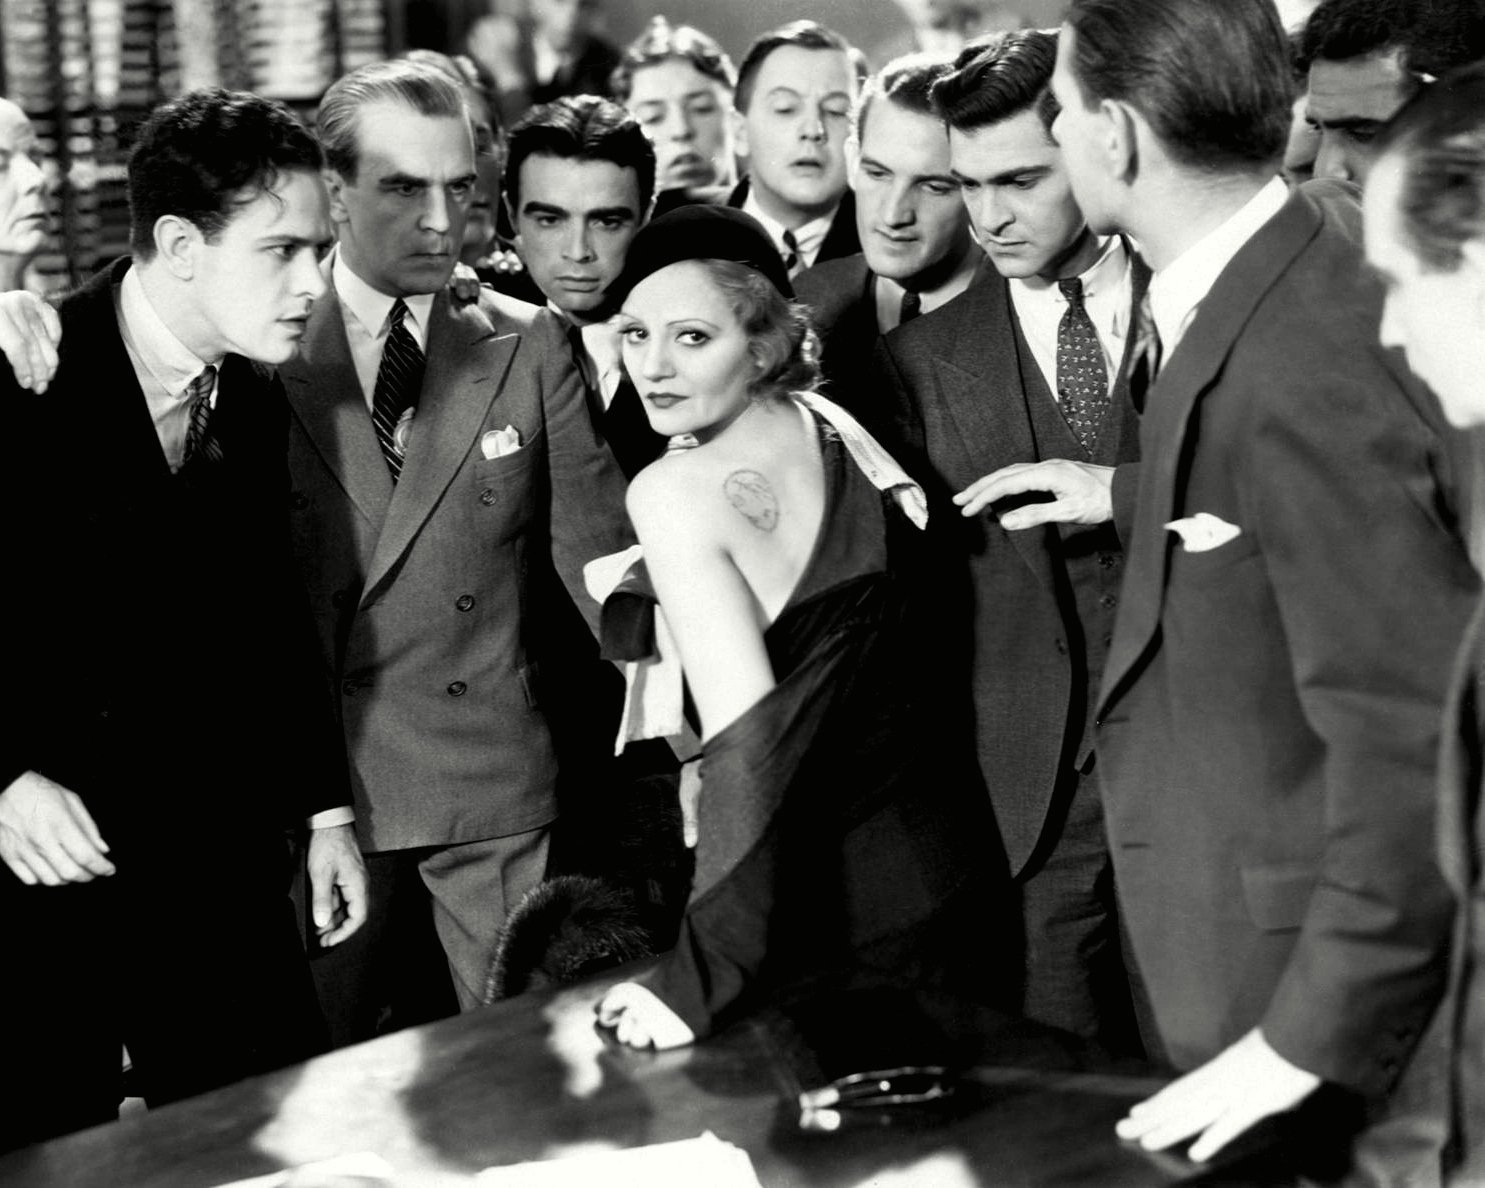 """TALLULAH BANKHEAD IN THE FILM """"THE CHEAT"""" - 8X10 PUBLICITY PHOTO (DD-141)"""